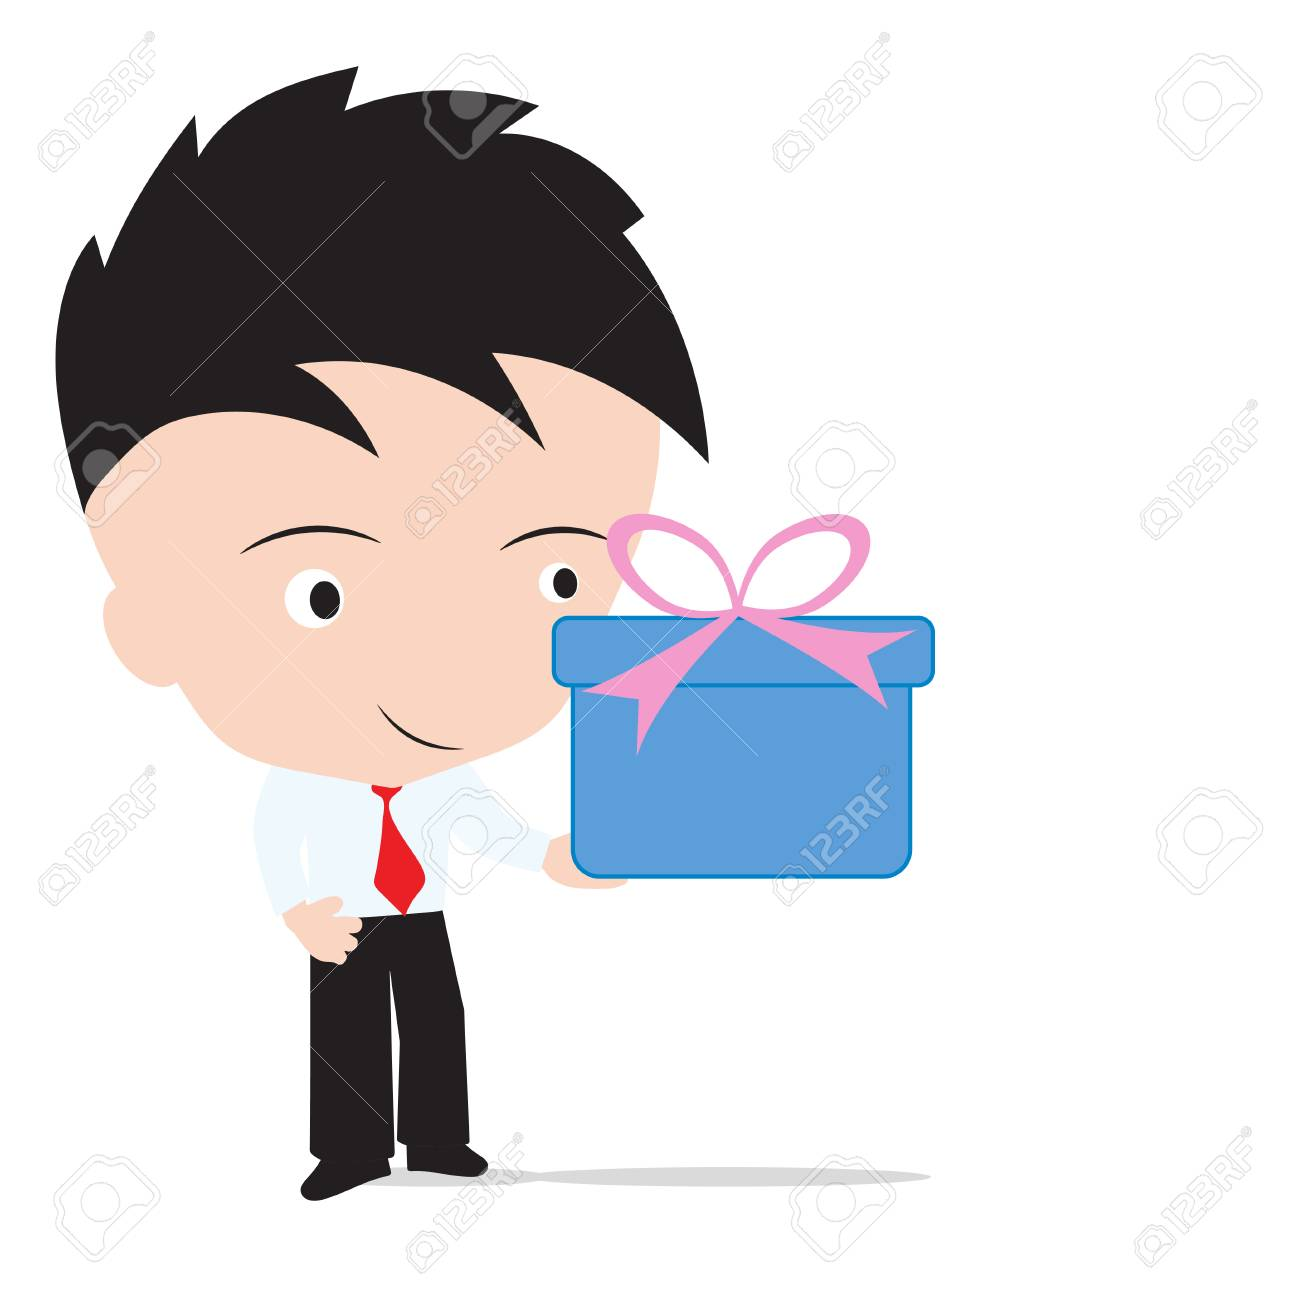 Businessman Holding The Gift Box For Happy New Year Christmas And Birthday Festival Isolated